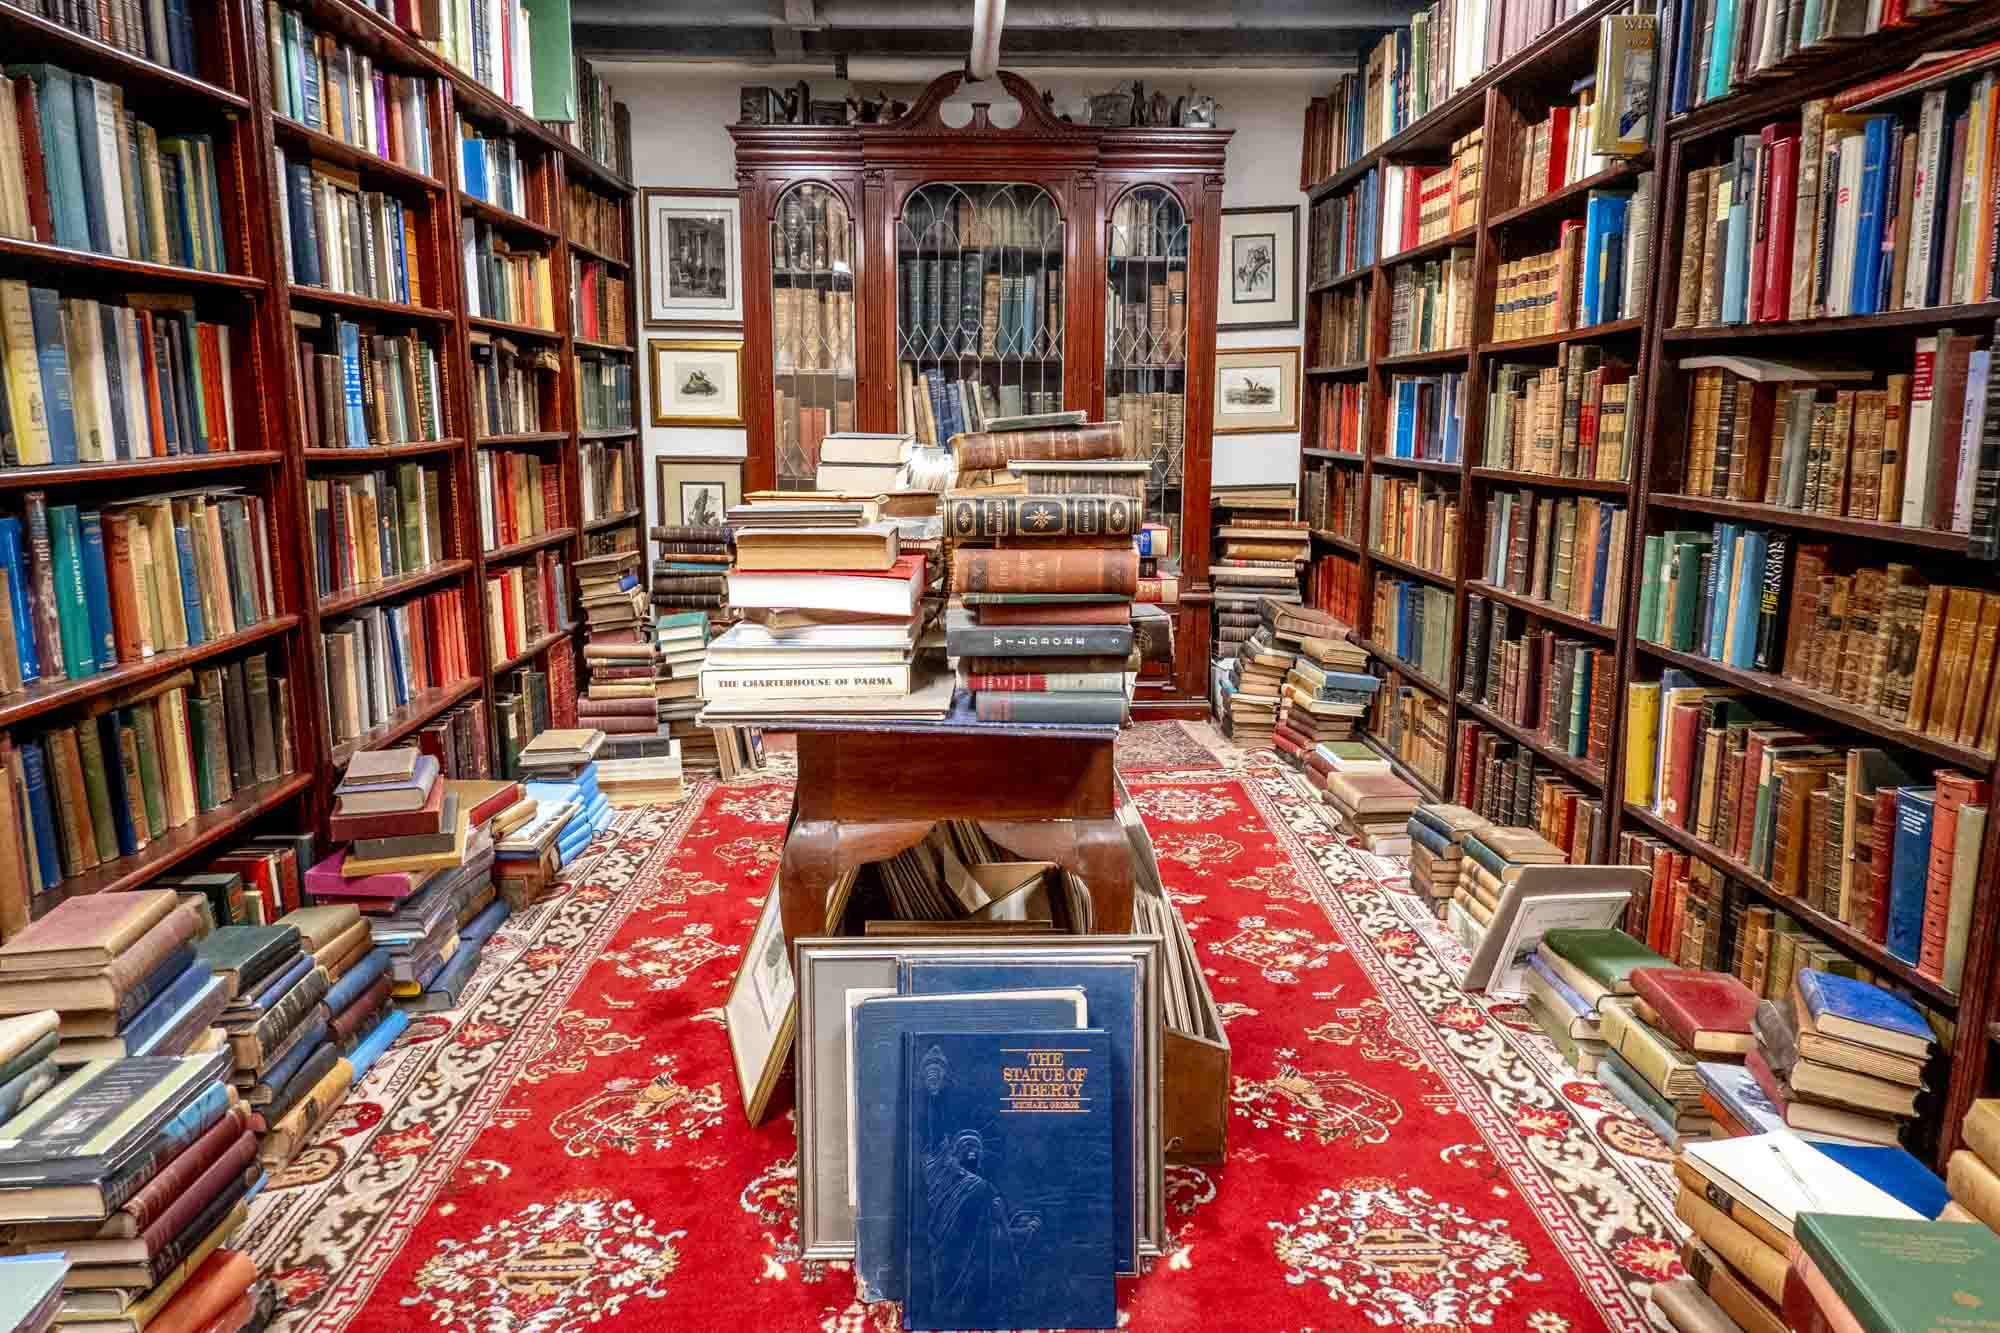 Room full of shelves and tables stacked with books